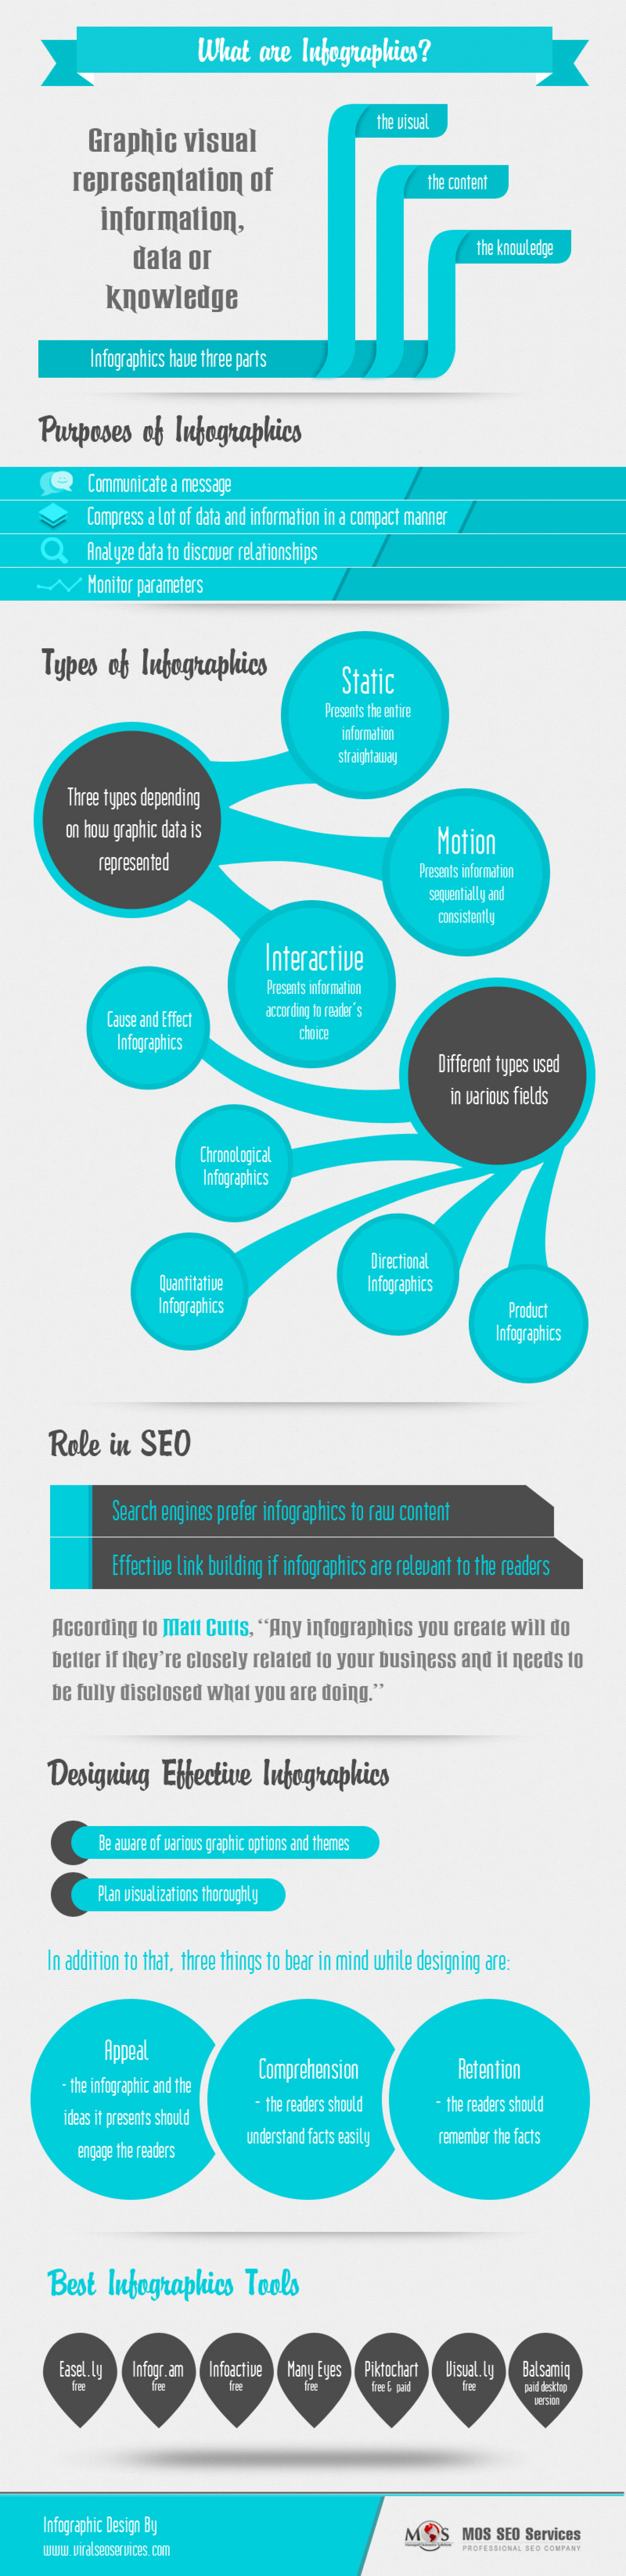 Infographics - A Powerful Tool for Content Marketing Infographic